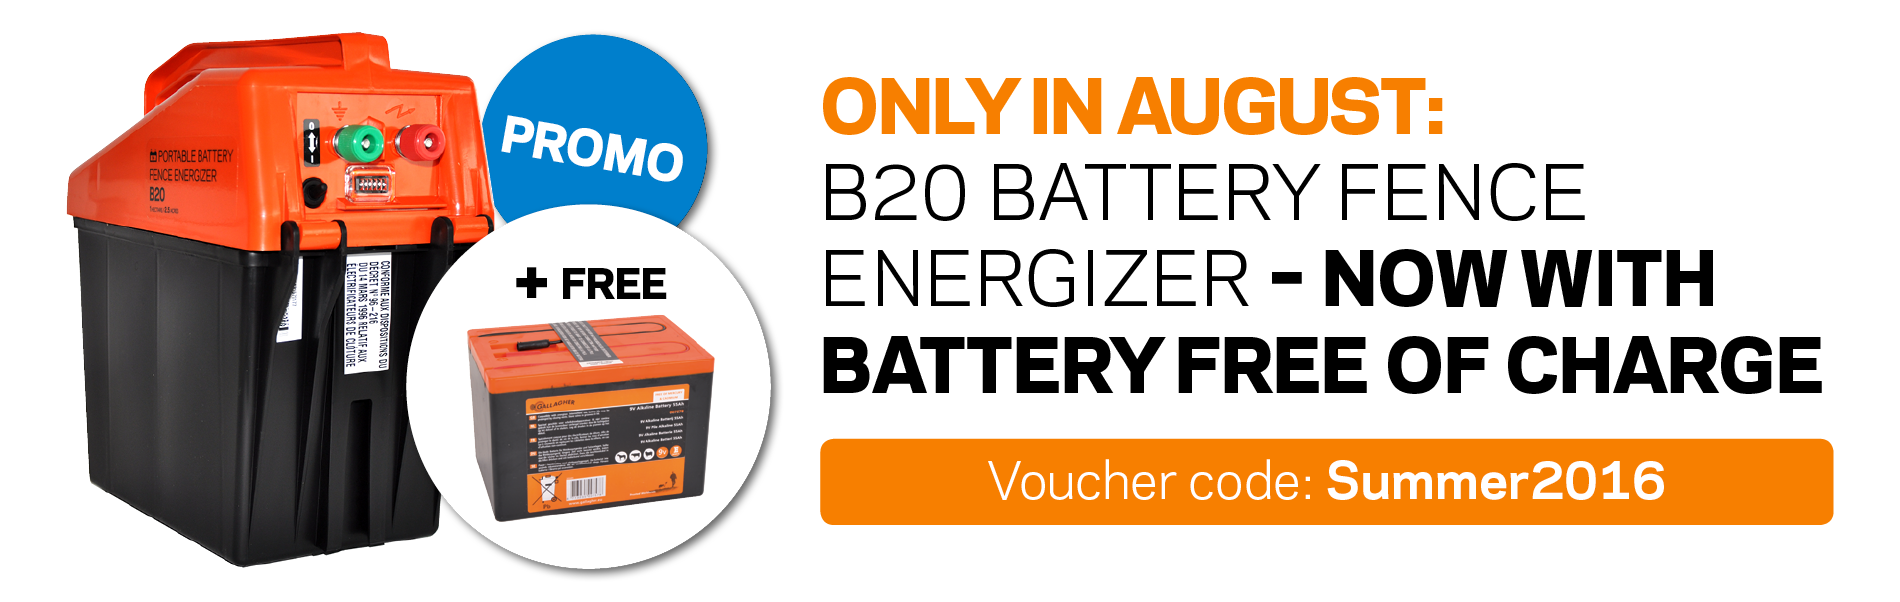 B20 battery fence energizer – now with battery free of charge